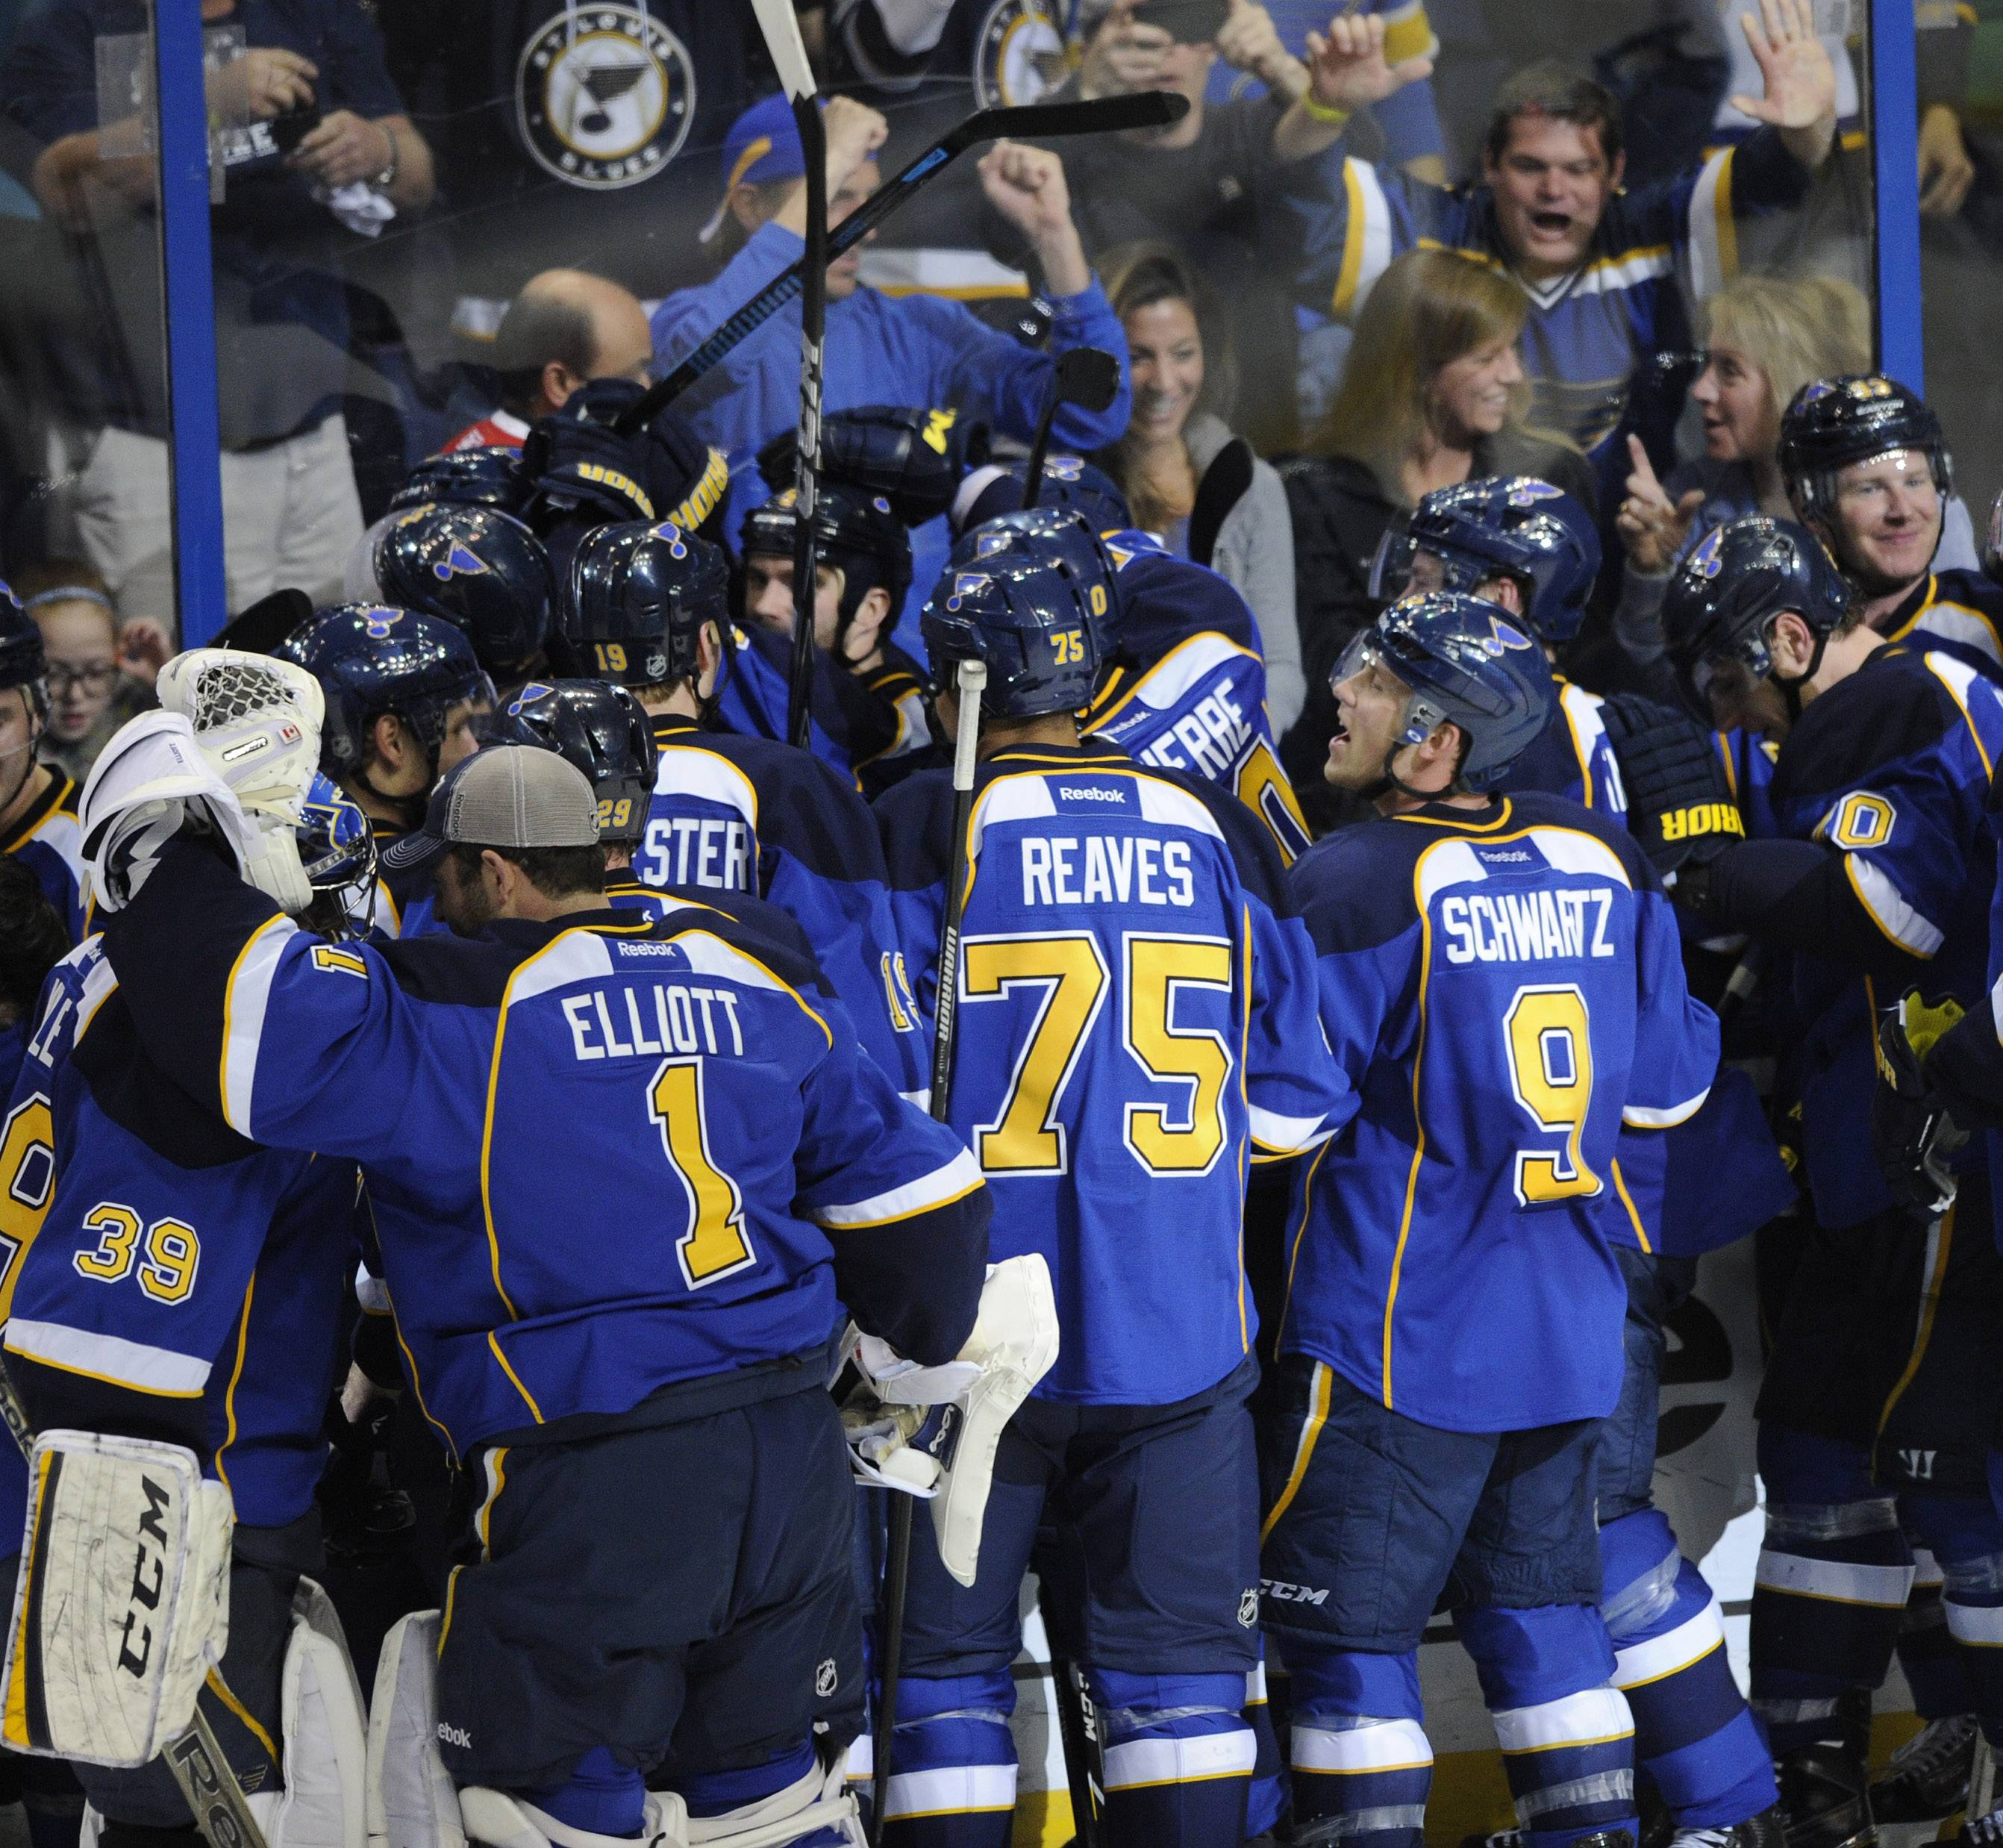 St. Louis Blues surround teammate Barret Jackman, center, after his game-winning goal against the Chicago Blackhawks during overtime in Game 2 of a first-round NHL hockey playoff series, Saturday, April 19, 2014, in St. Louis.